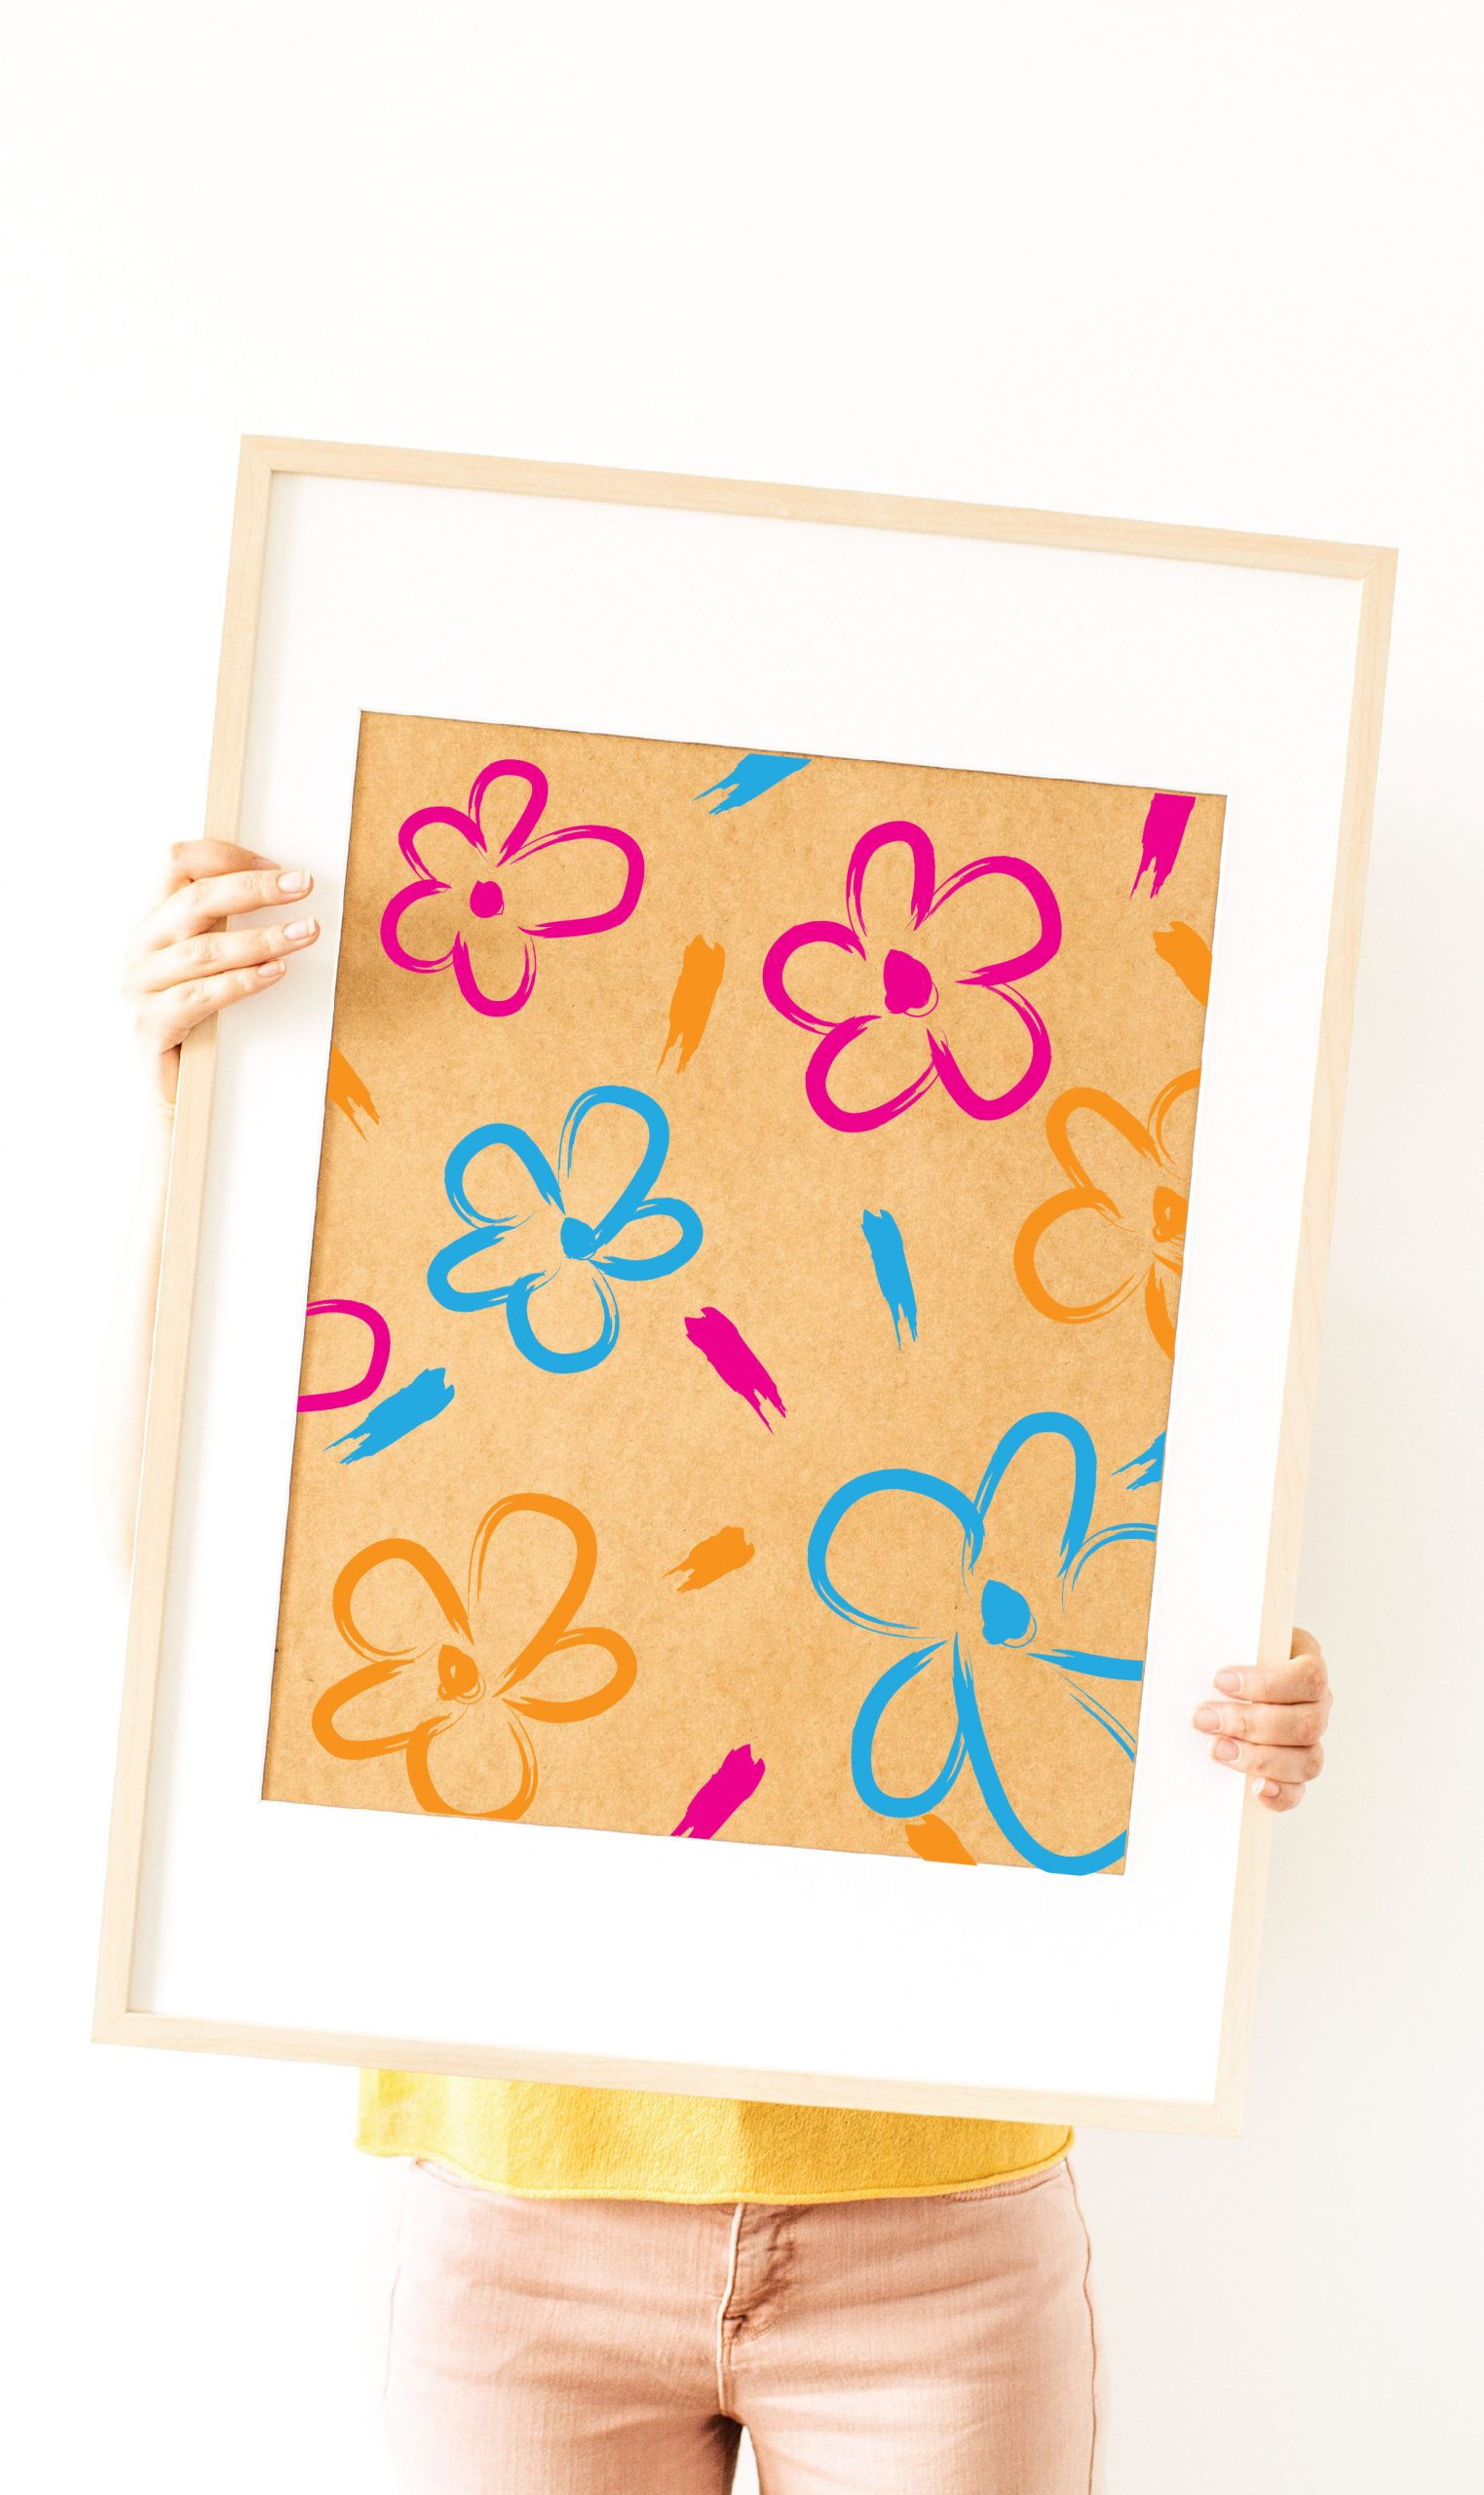 Canvas Painting Ideas 35 Beautiful Ways To Make Wall Art At Home Even If You Aren T Crafty